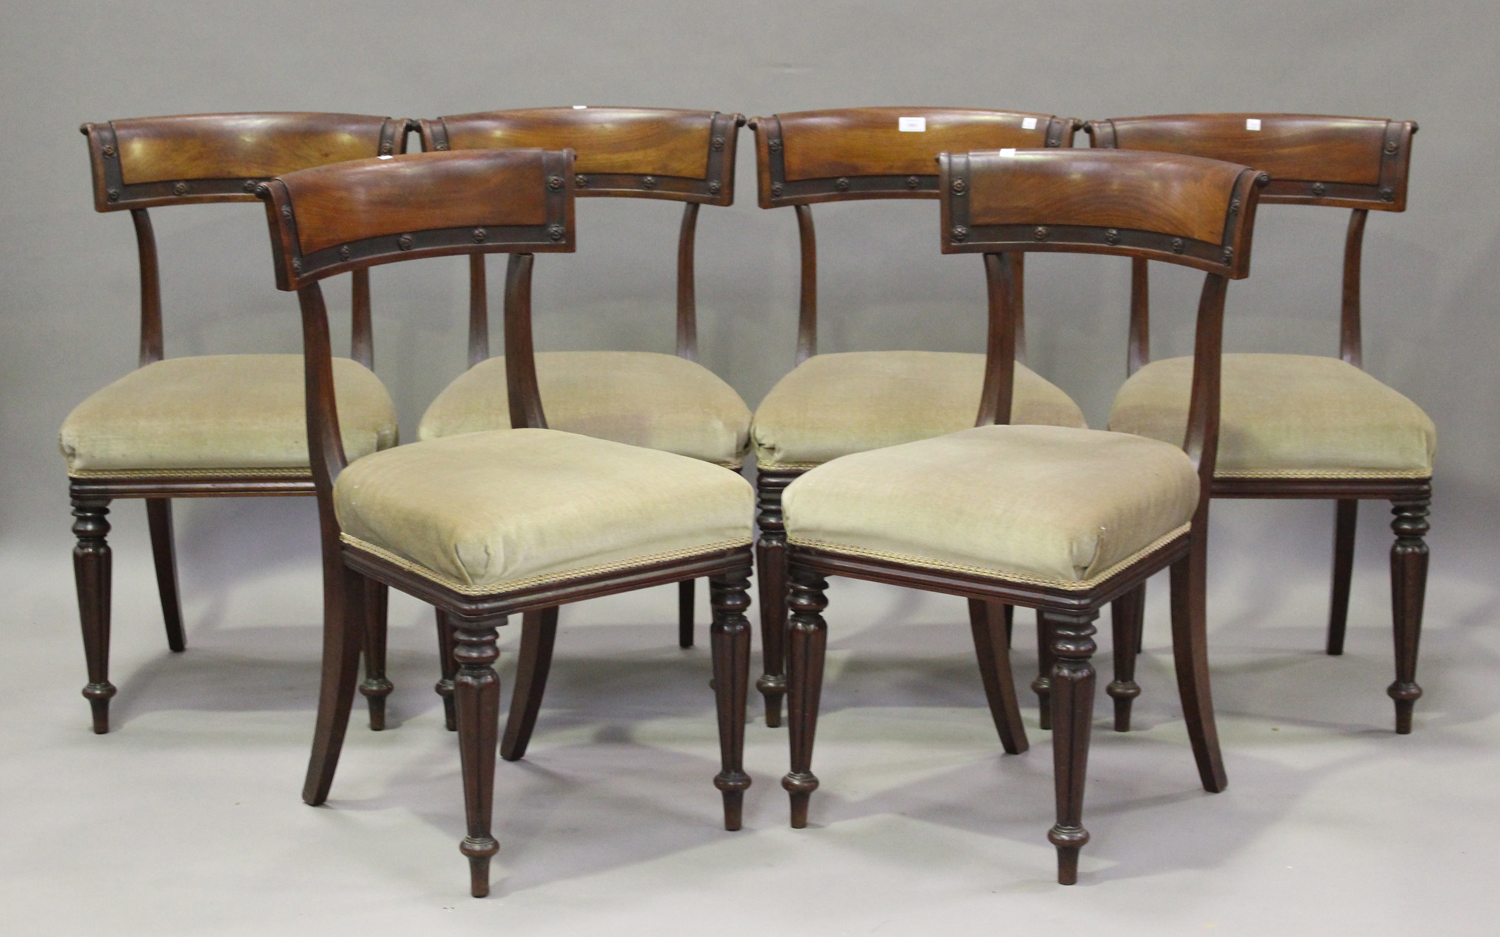 A set of six William IV mahogany bar back dining chairs with carved rosette decoration, the